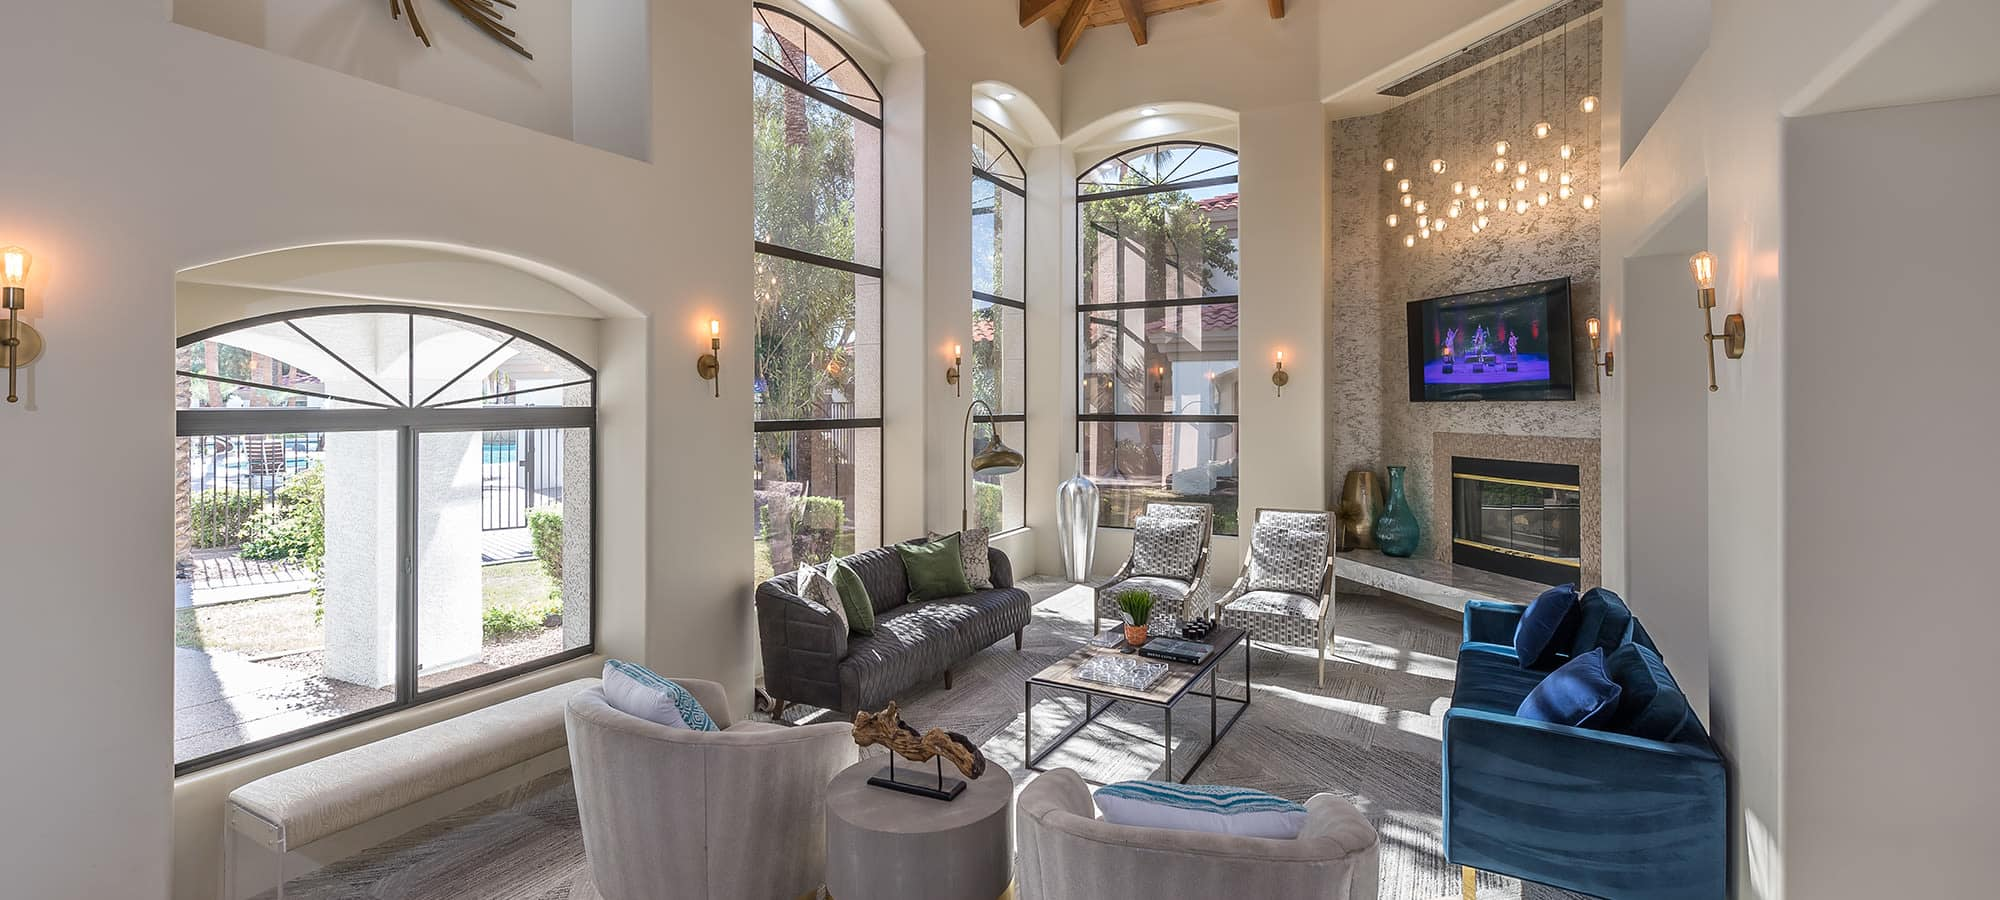 Community clubhouse with vaulted ceilings at San Palmas in Chandler, Arizona